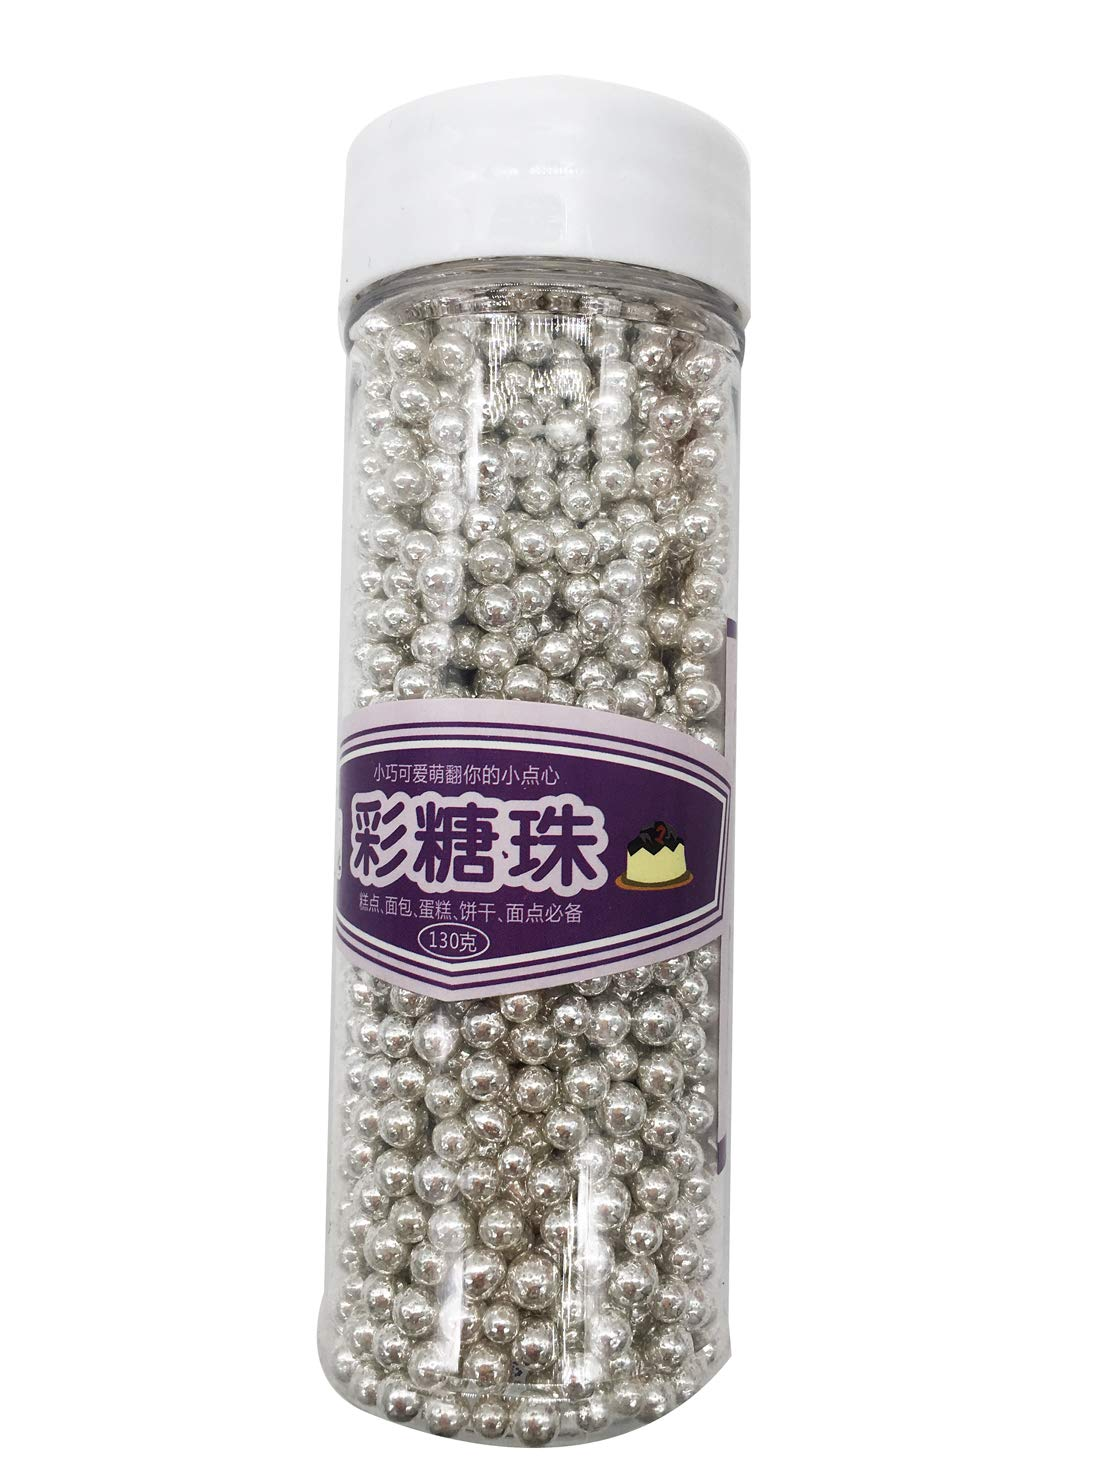 Gold Edible Candy Mini Pearls Cupcake Cake Toppers, Celebrations Candy Pearls Shaker Jar Wedding Shower Party Cake Food Decoration Supplies 4.6oz 4mm (Silver)